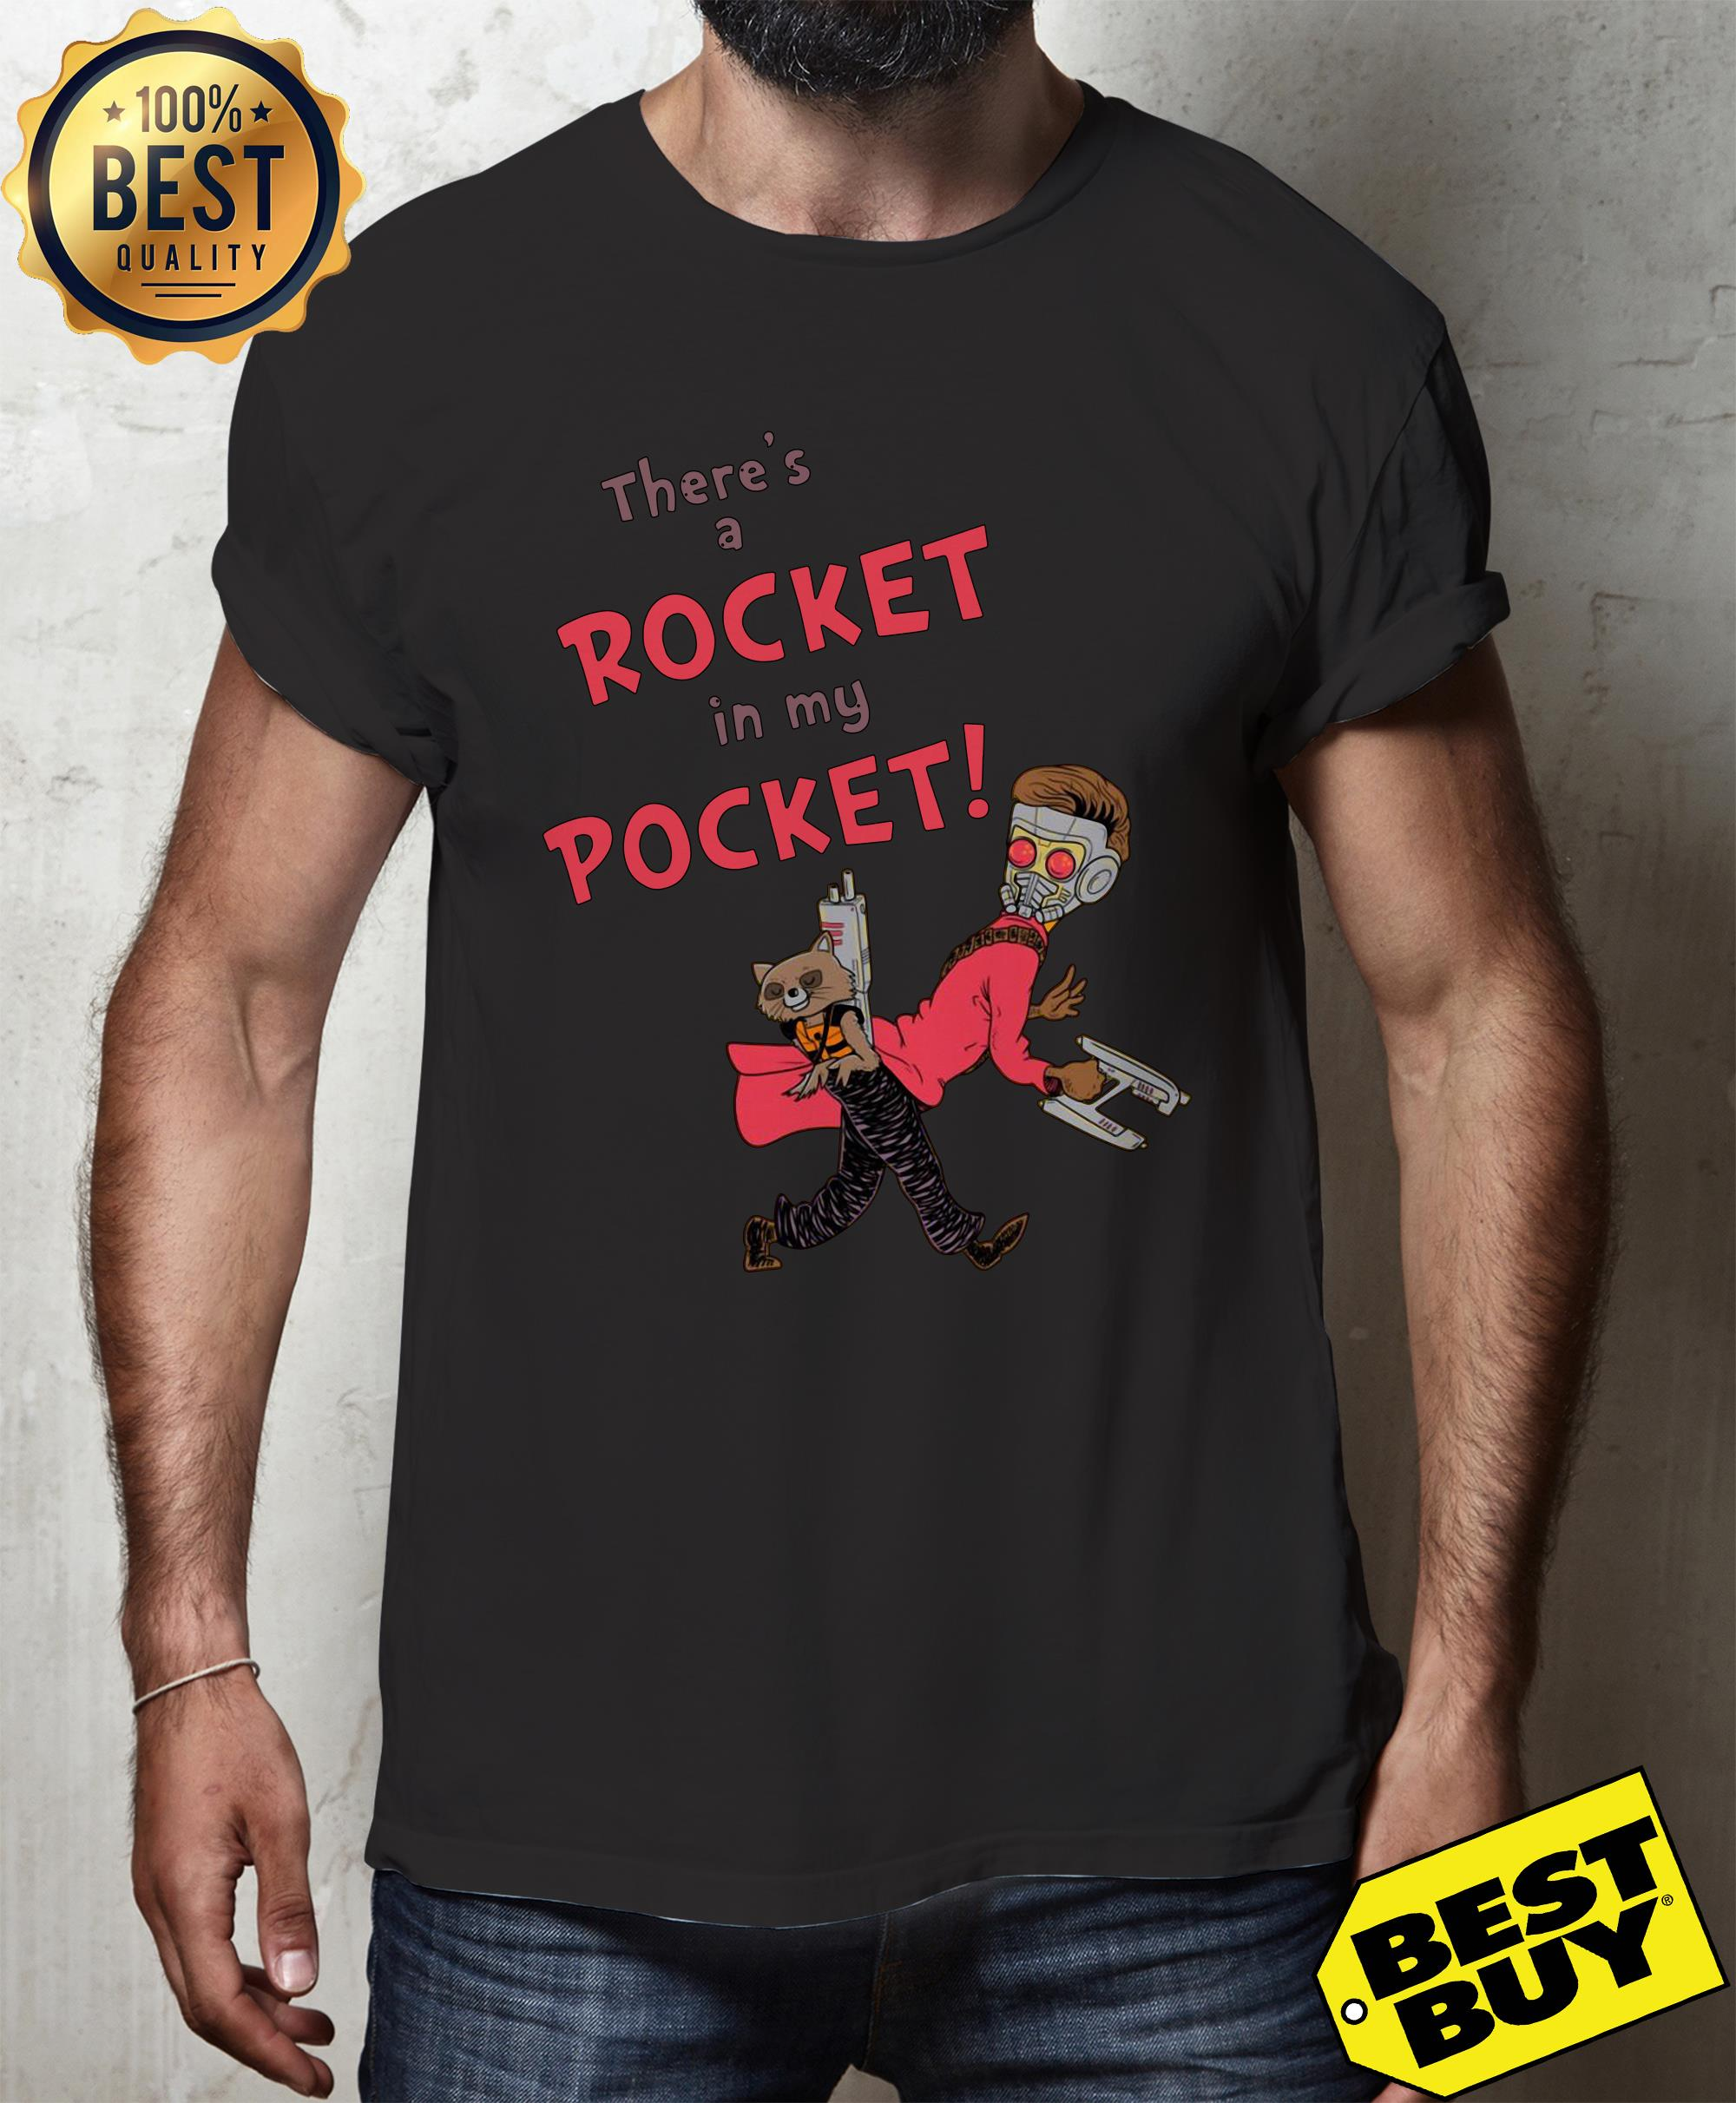 There's a Rocket in my pocket shirt